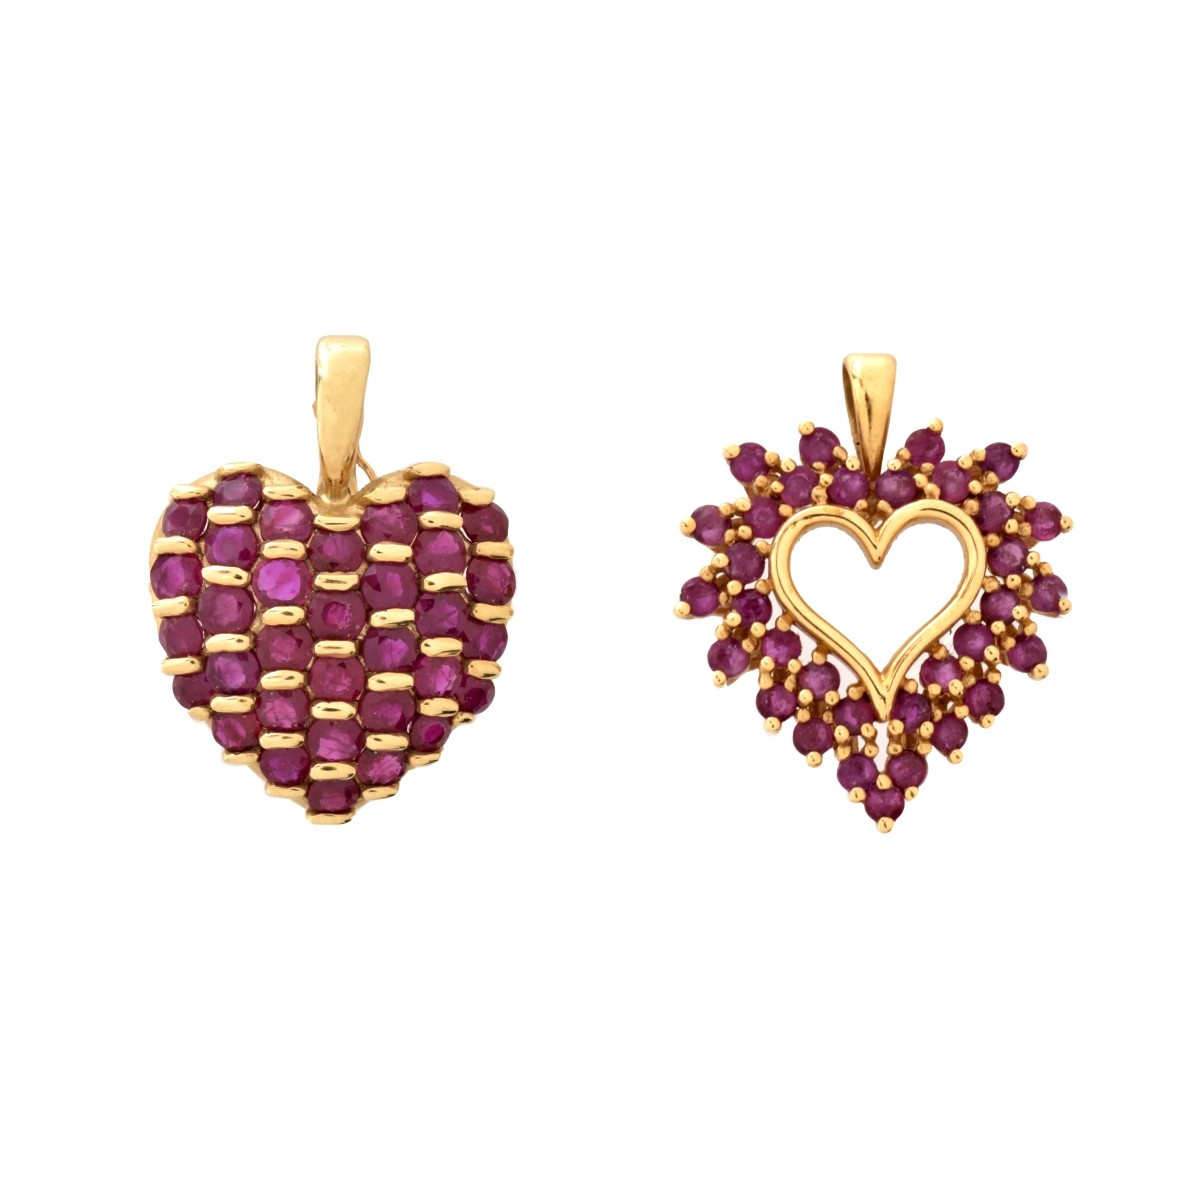 Two Ruby and 14K Heart Pendants